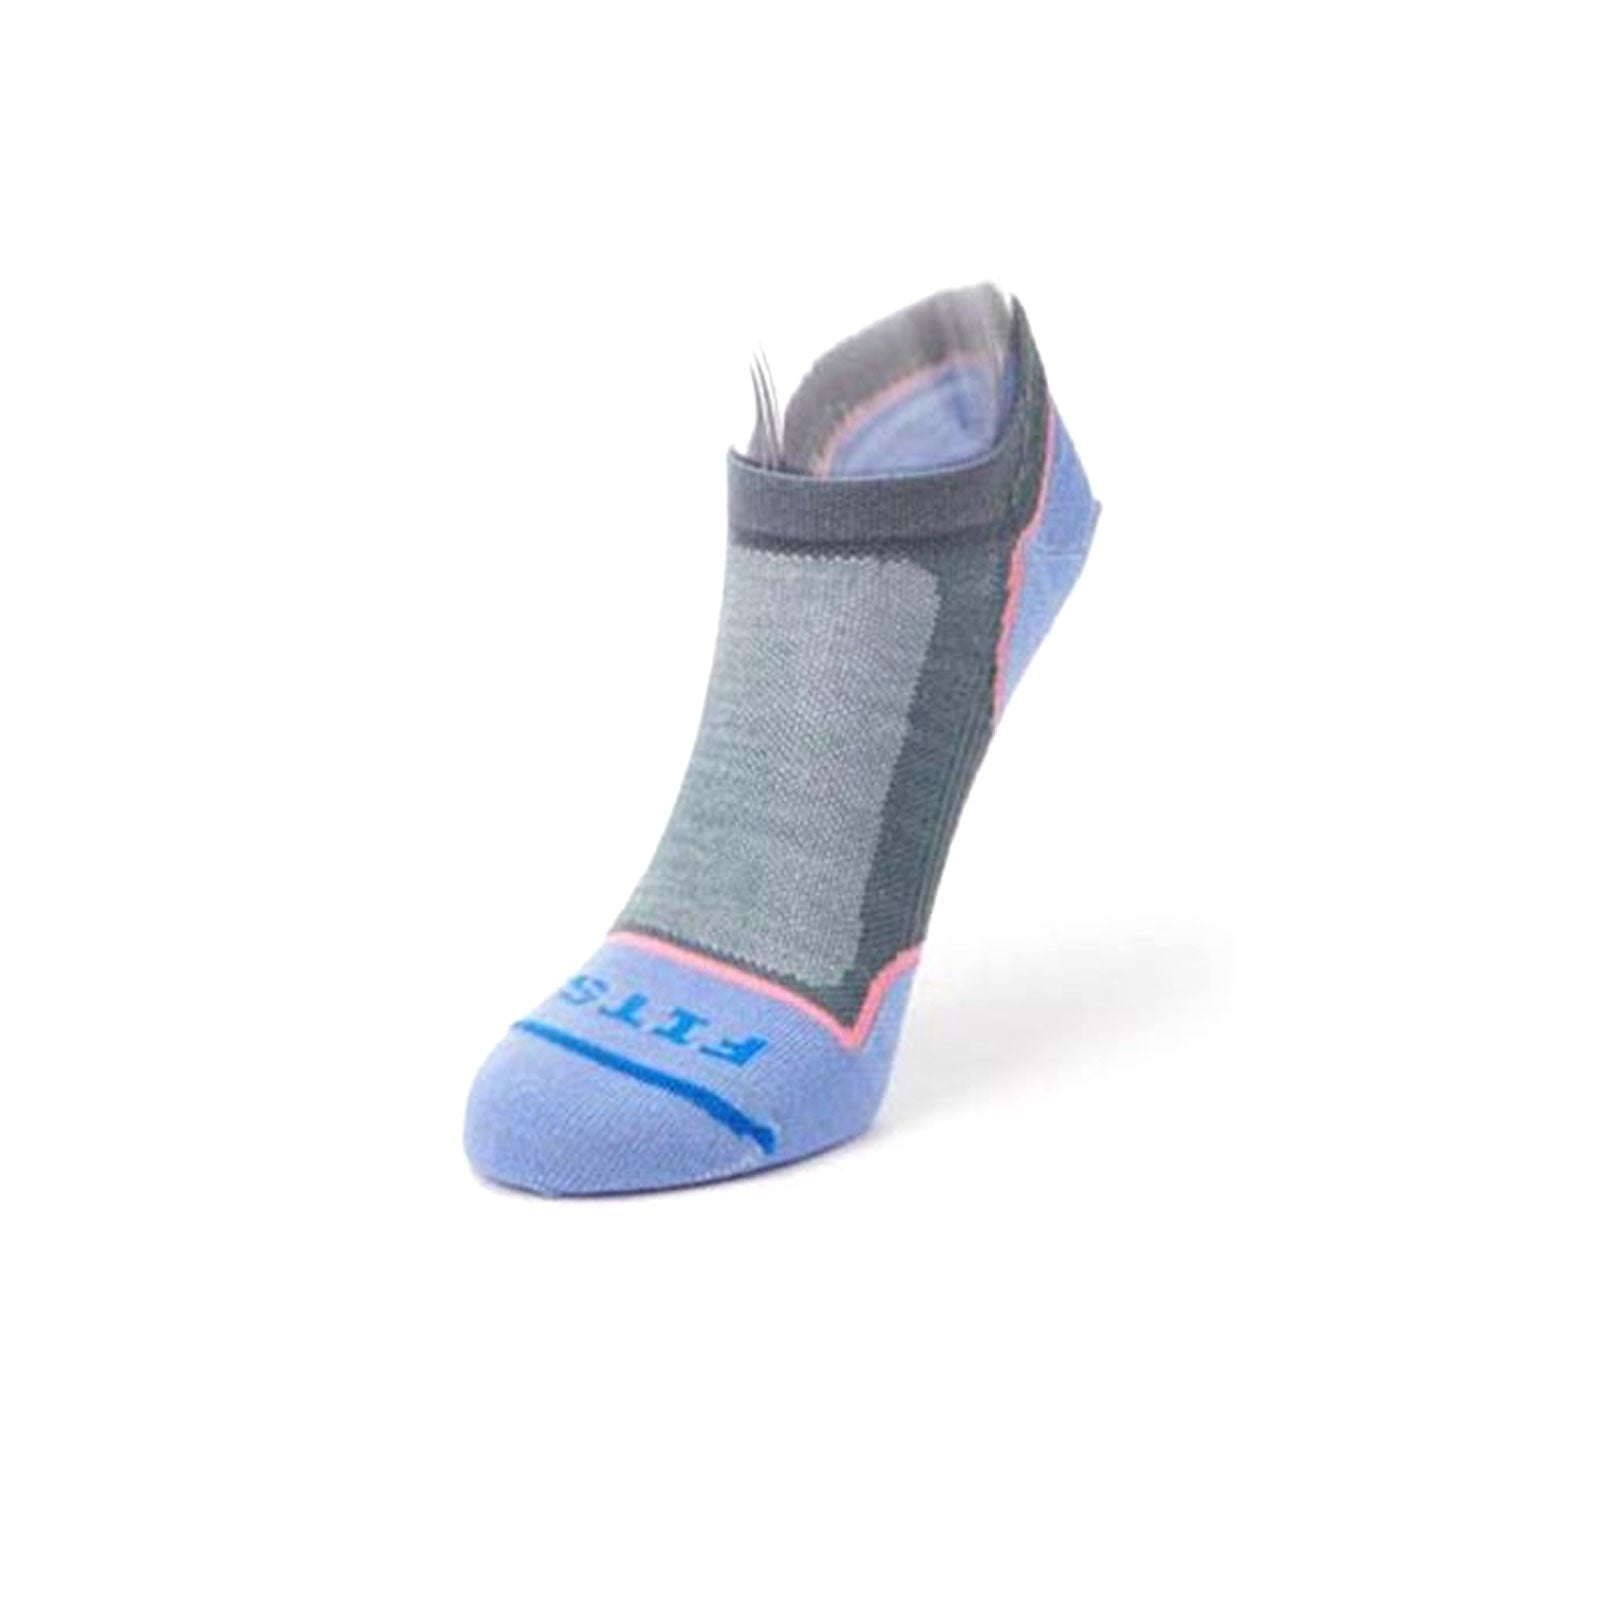 Fits Ultra Light Runner No Show (Women) - Stormy Weather Socks - Life - No Show - The Heel Shoe Fitters